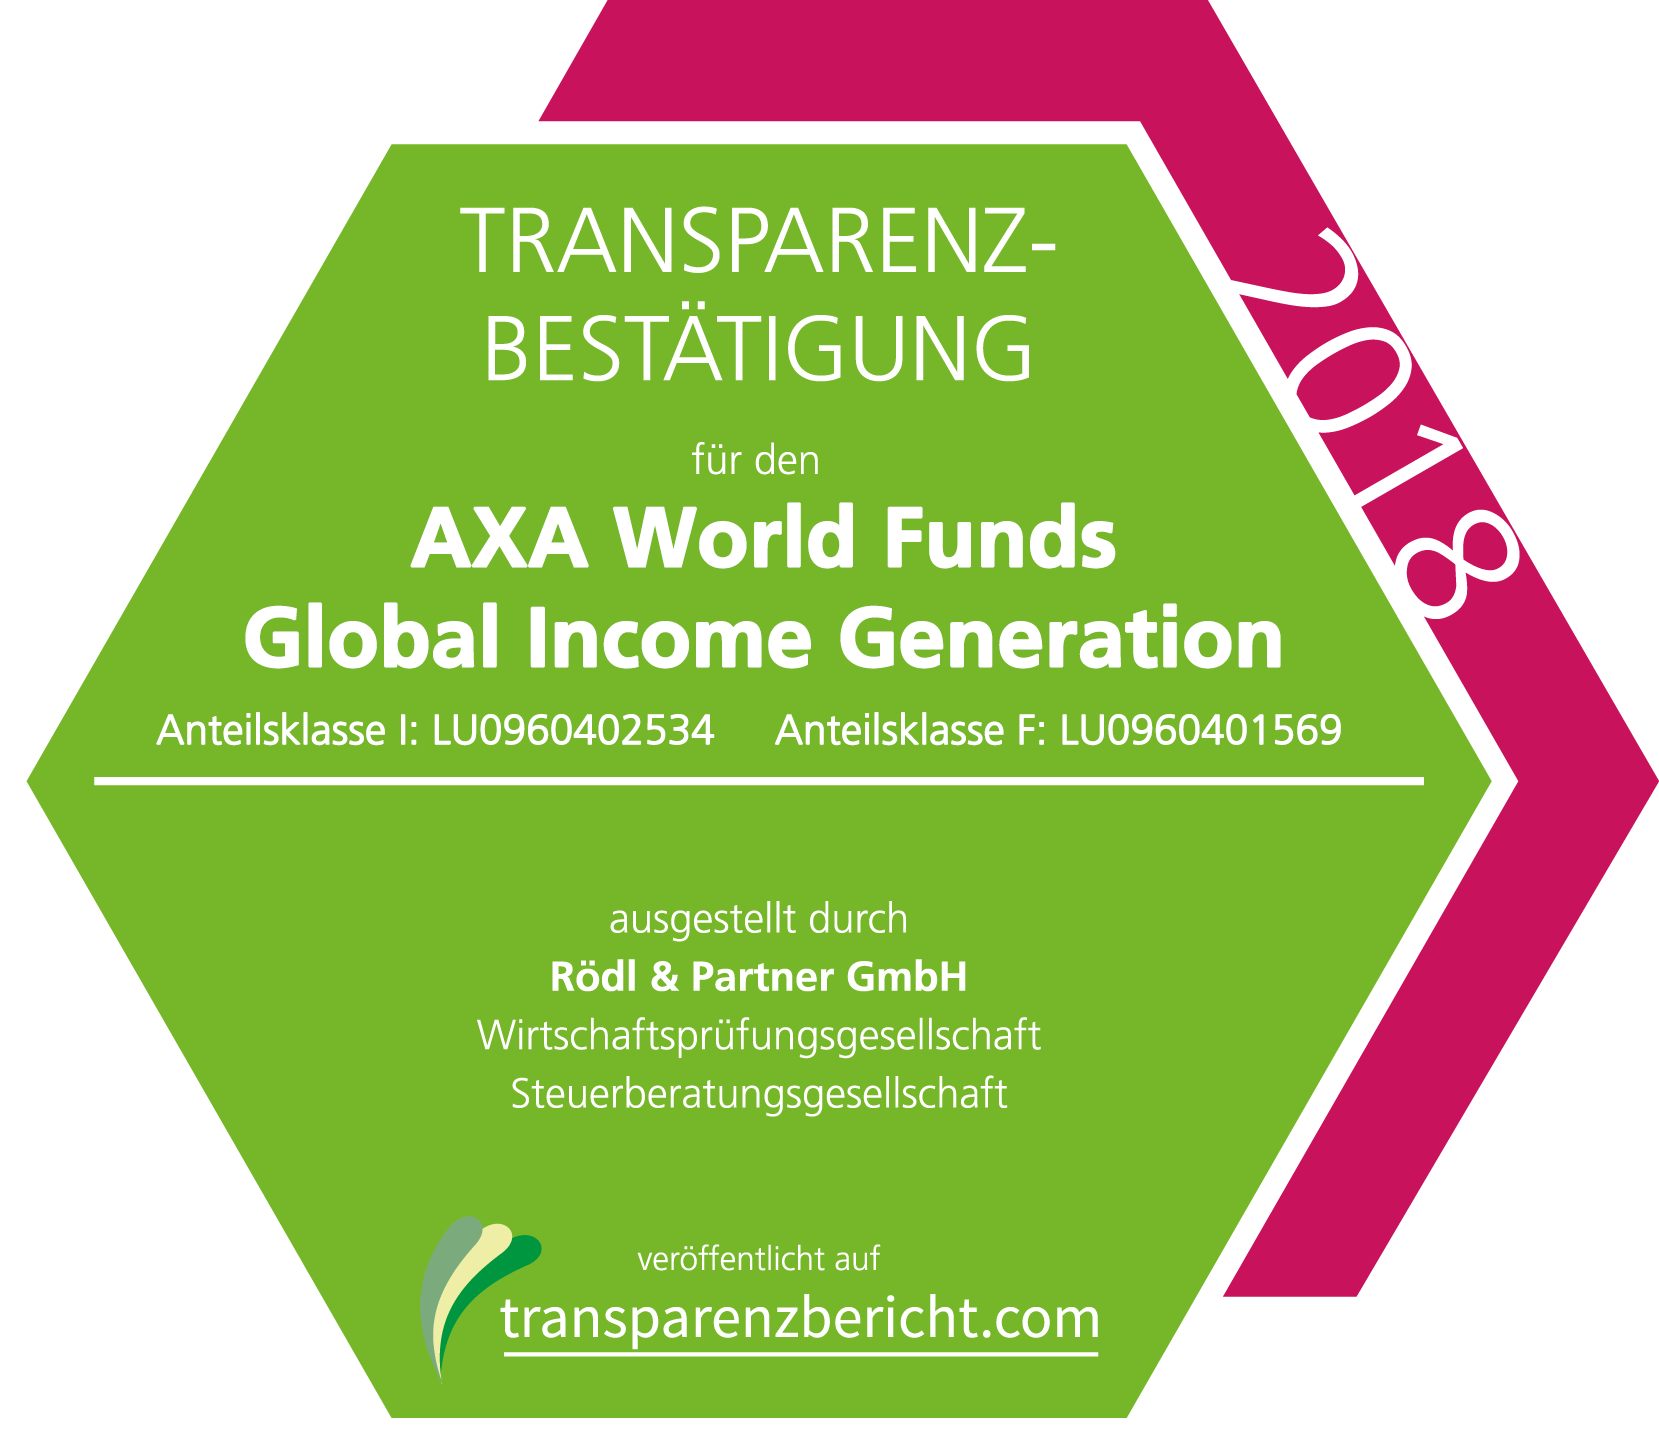 AXA World Funds Global Income Generation 2018